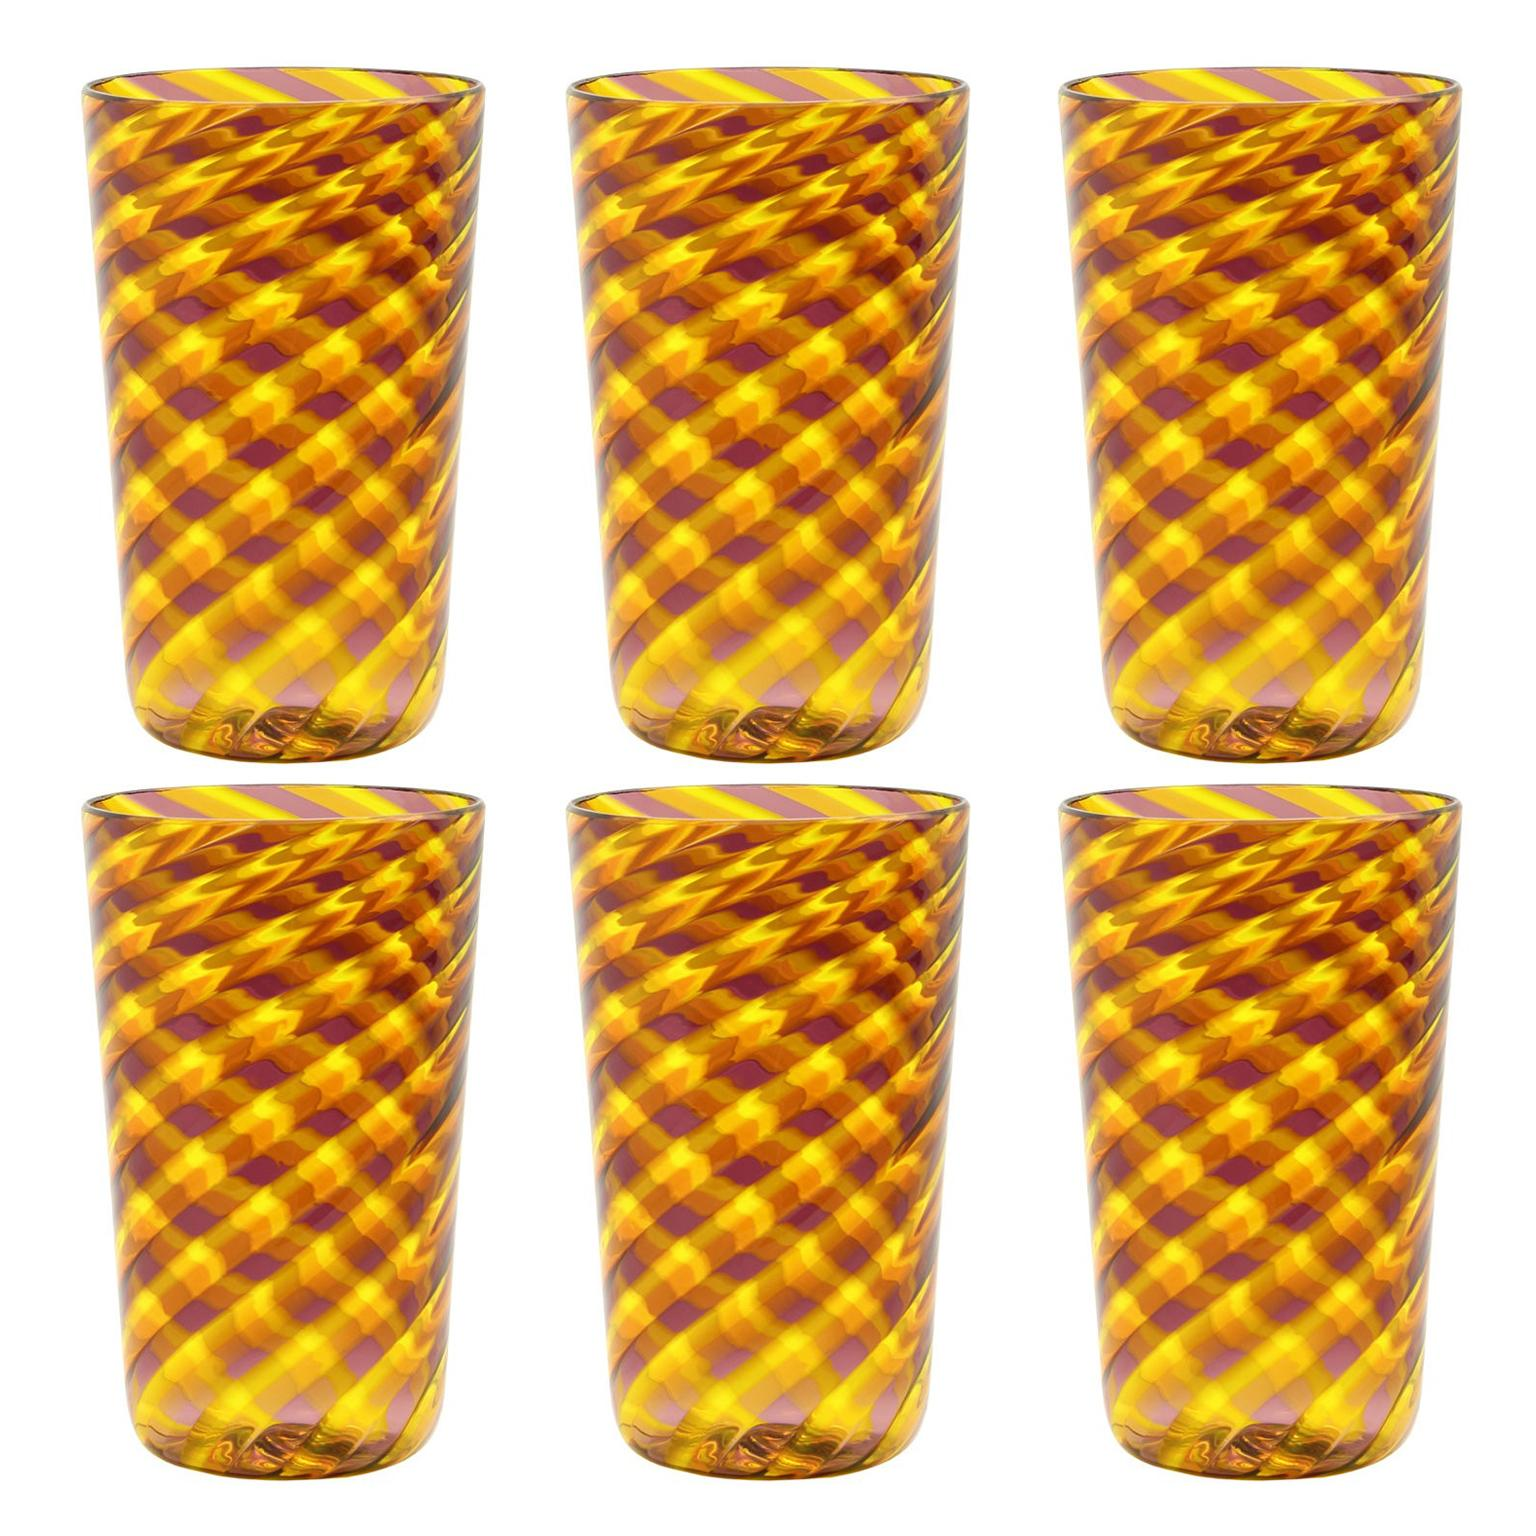 Set 6 Artistic Handmade Glasses Murano Red and Yellow Glass Canes by Multiforme